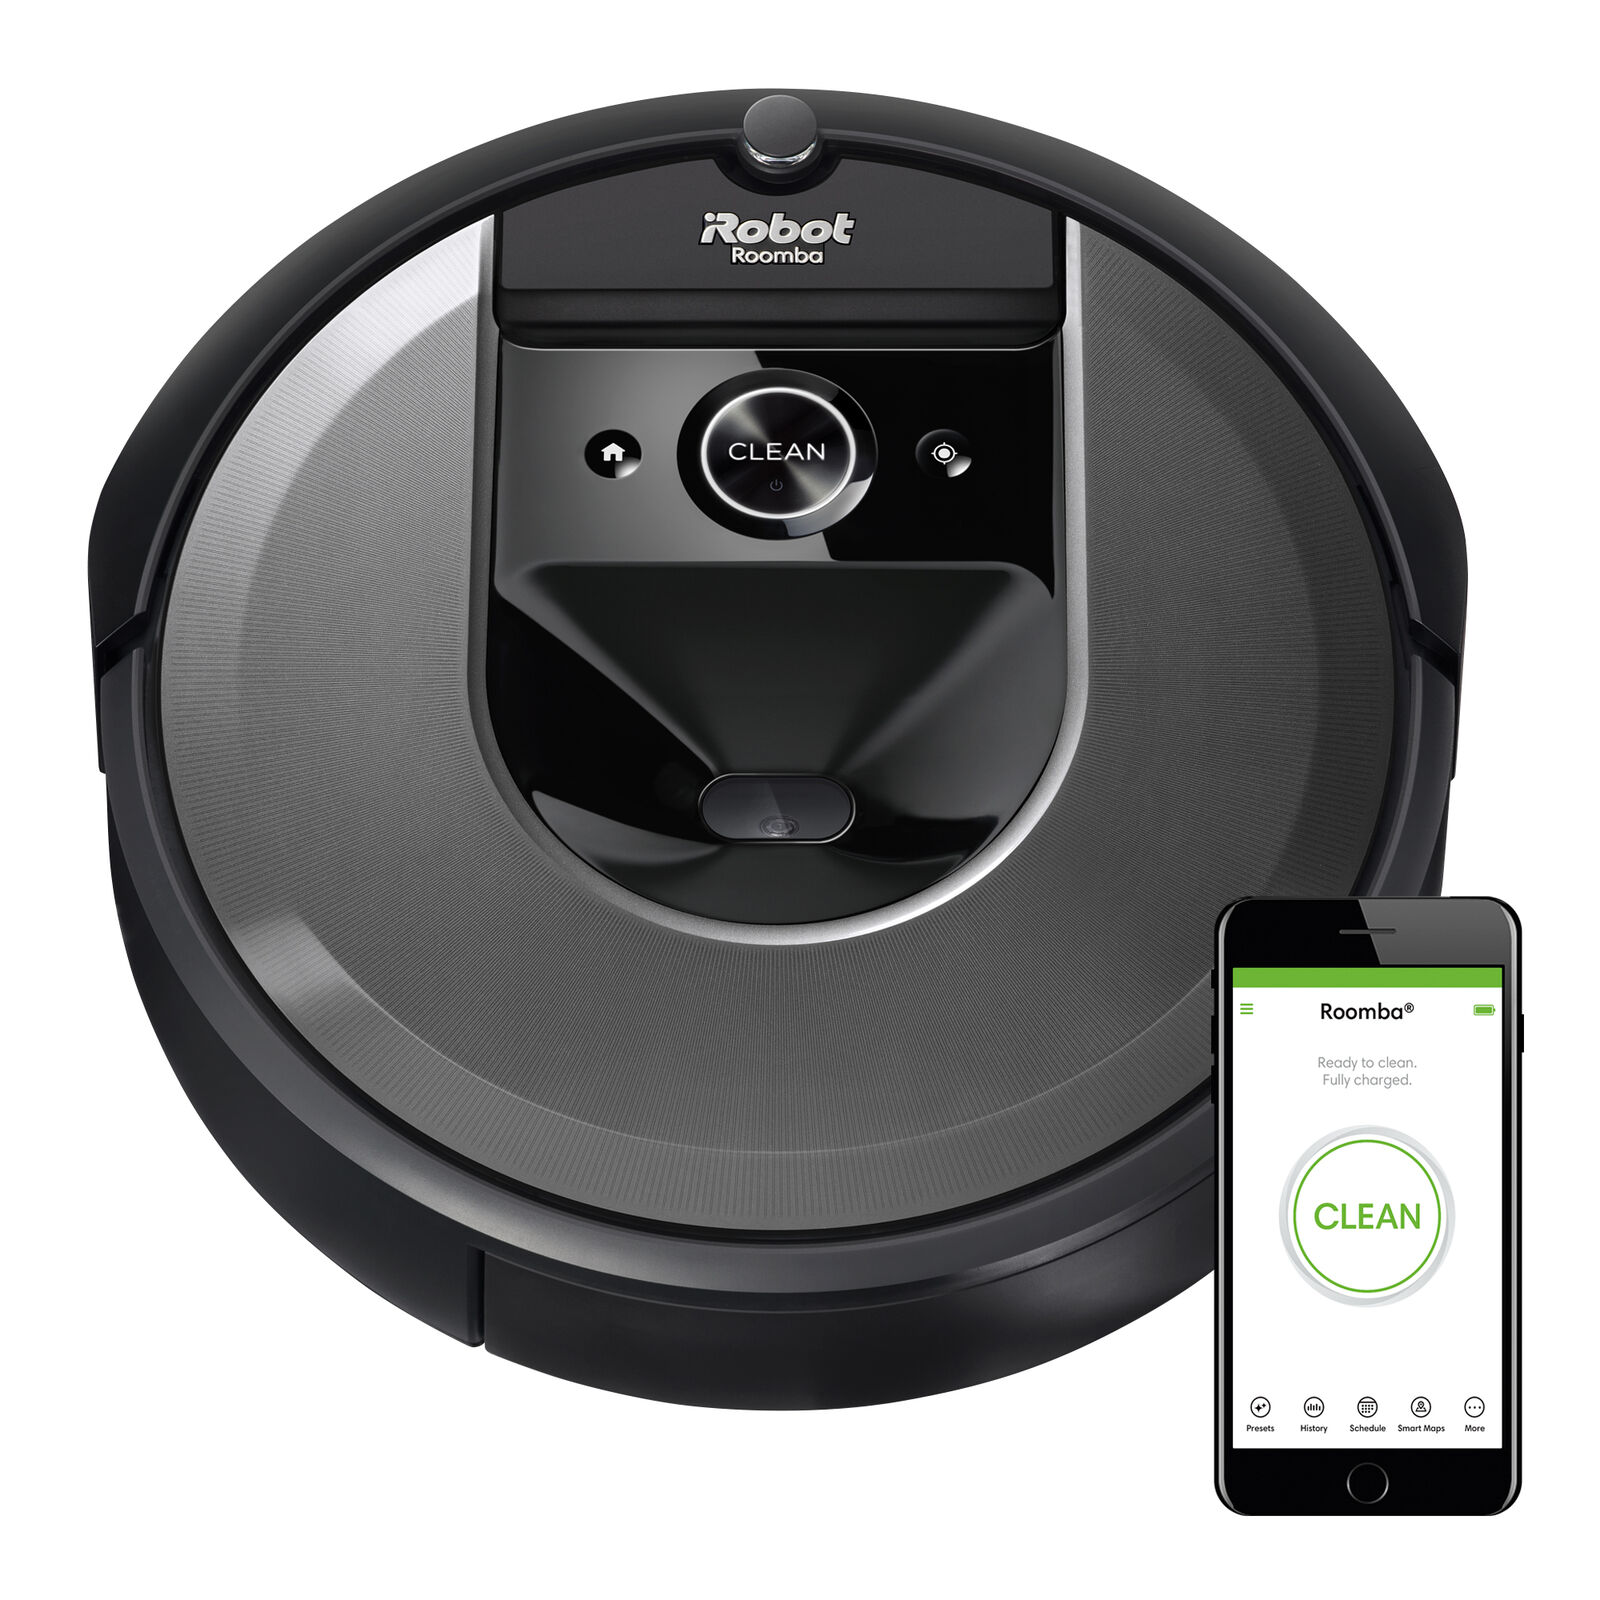 IRobot i715020 Roomba i7 Wi-Fi Connected Robot Vacuum Cleaner (7150)